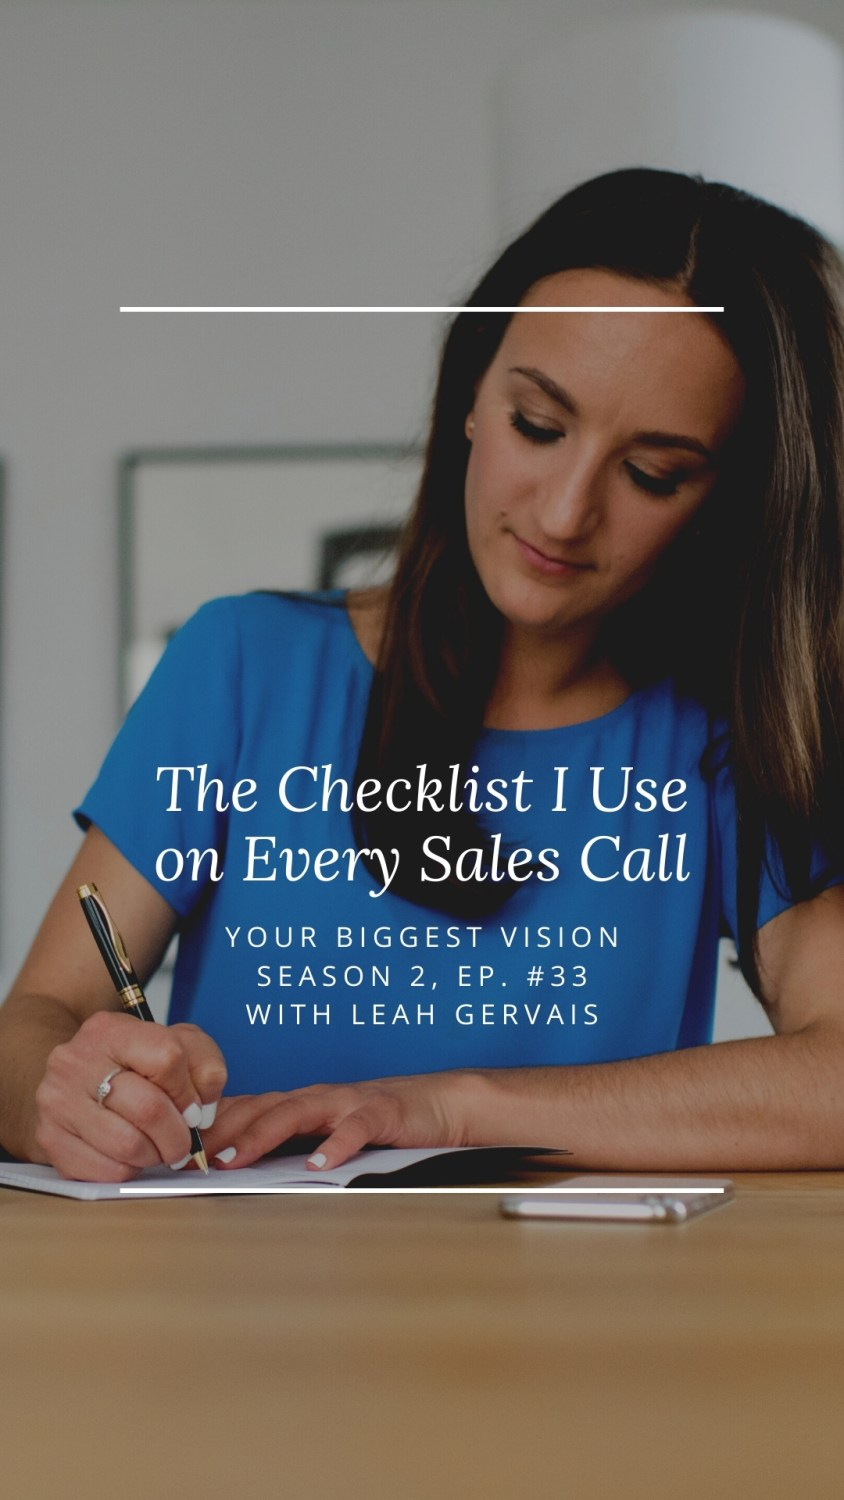 Today's episode breaks down my personal checklist that I use on every sales call. It has helped me step in to my zone of genius during sales calls!